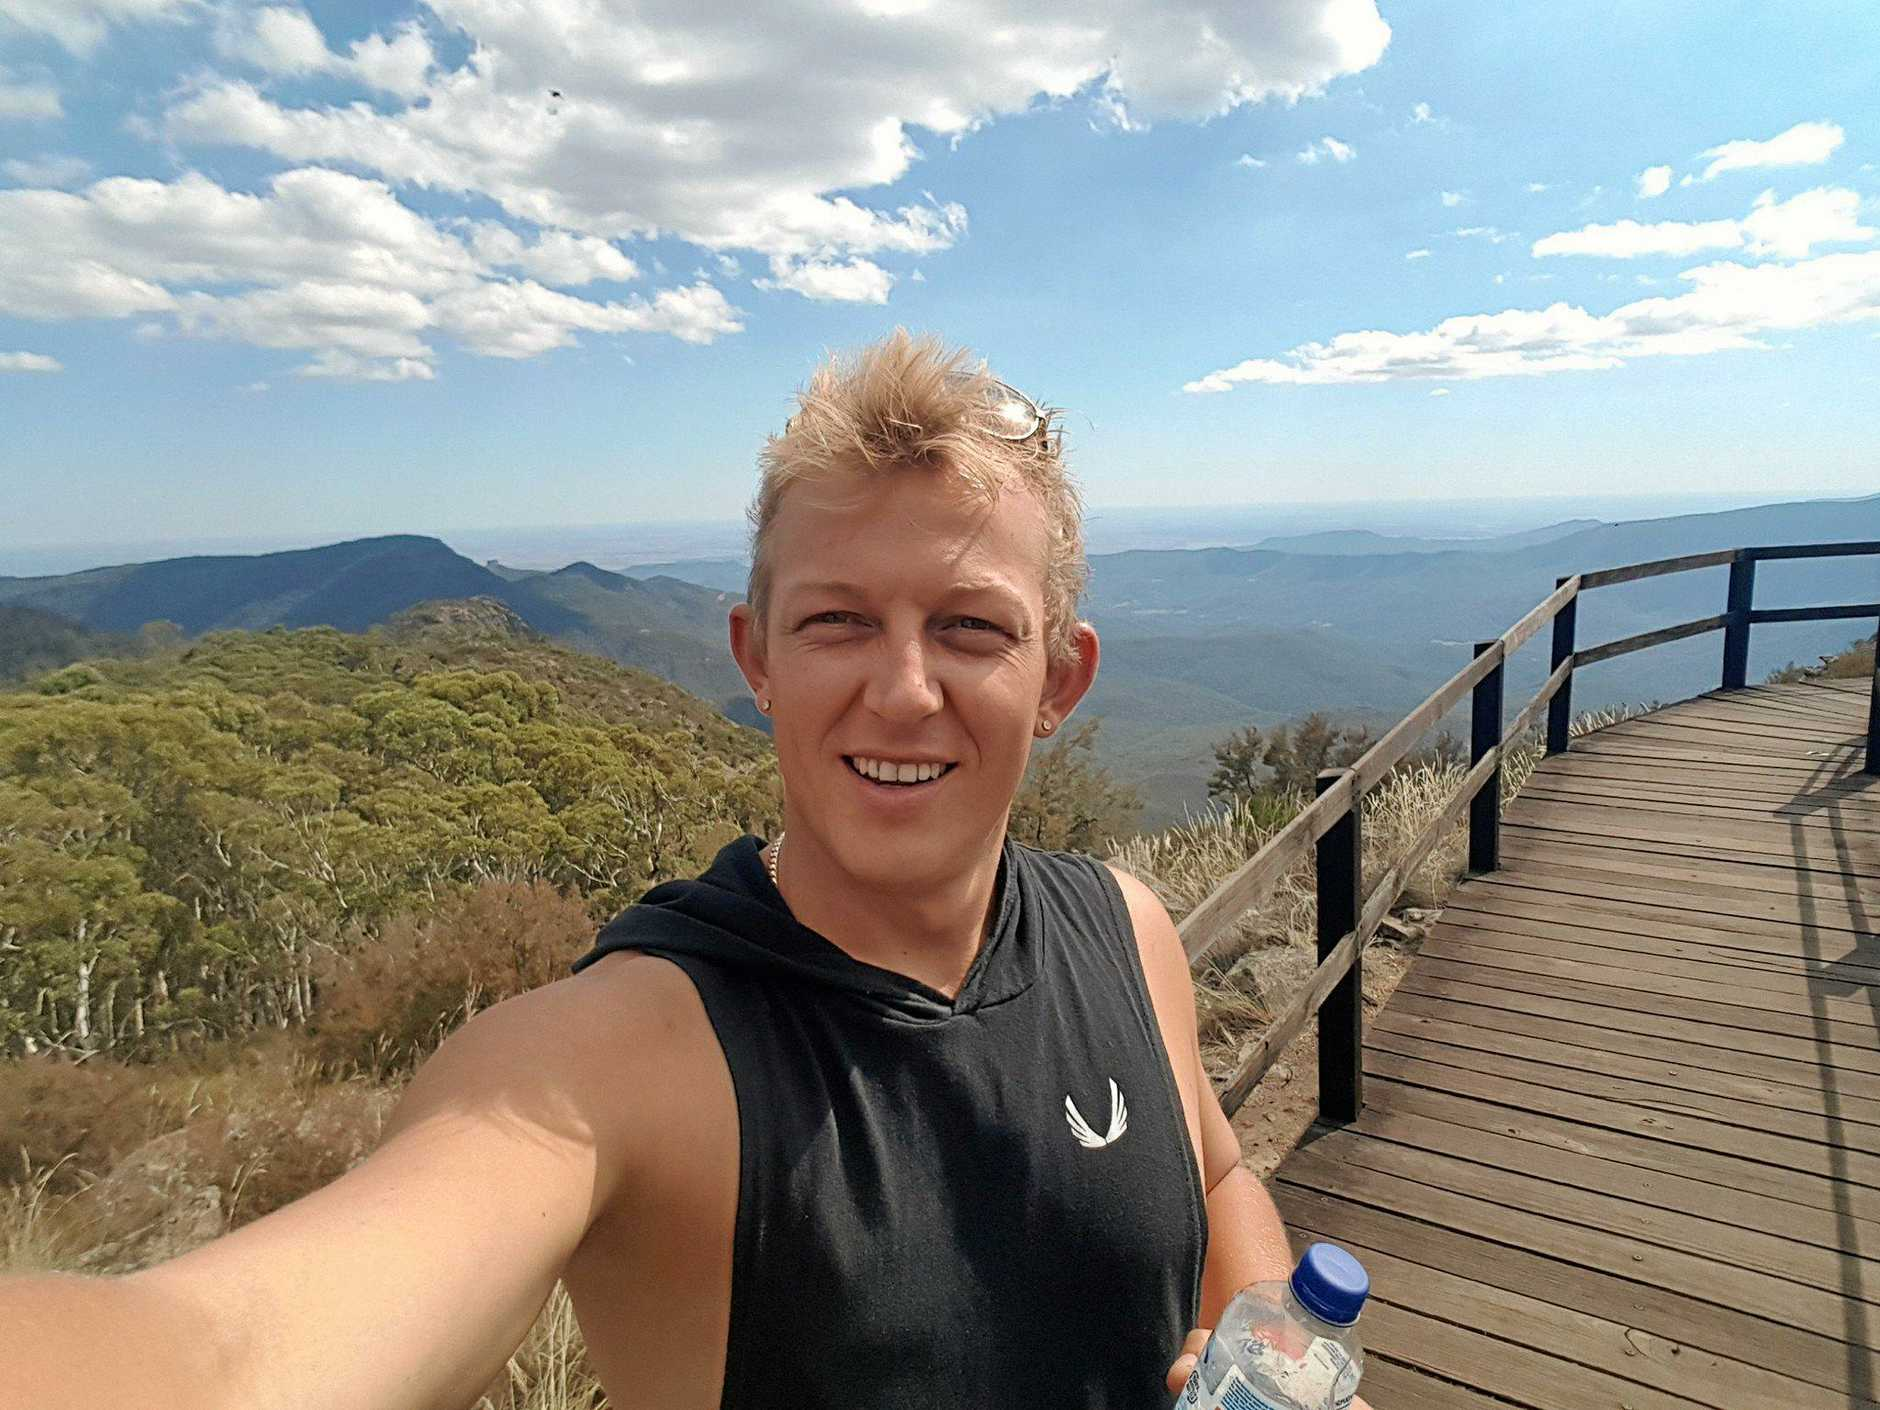 REST IN PEACE: Rohan Van Wees is being remembered by his family and friends after he lost his life in a single vehicle accident last week.